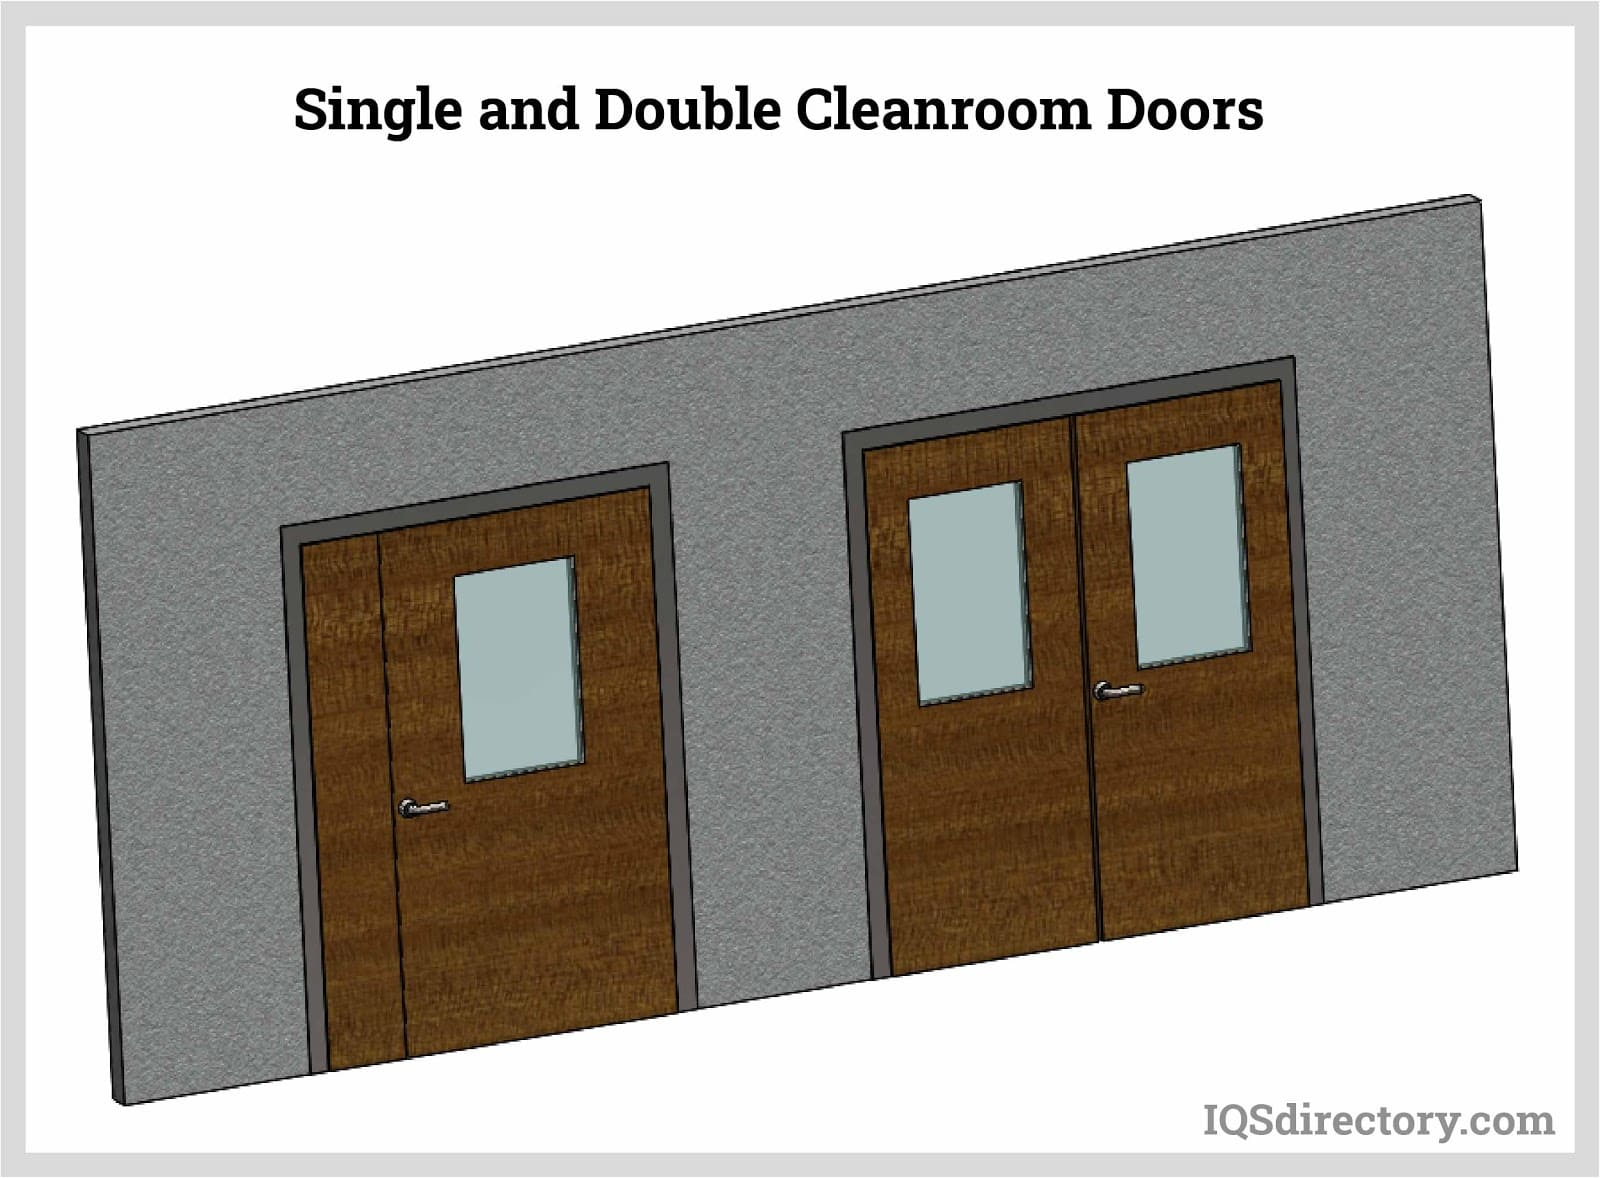 Single and Double Cleanroom Doors